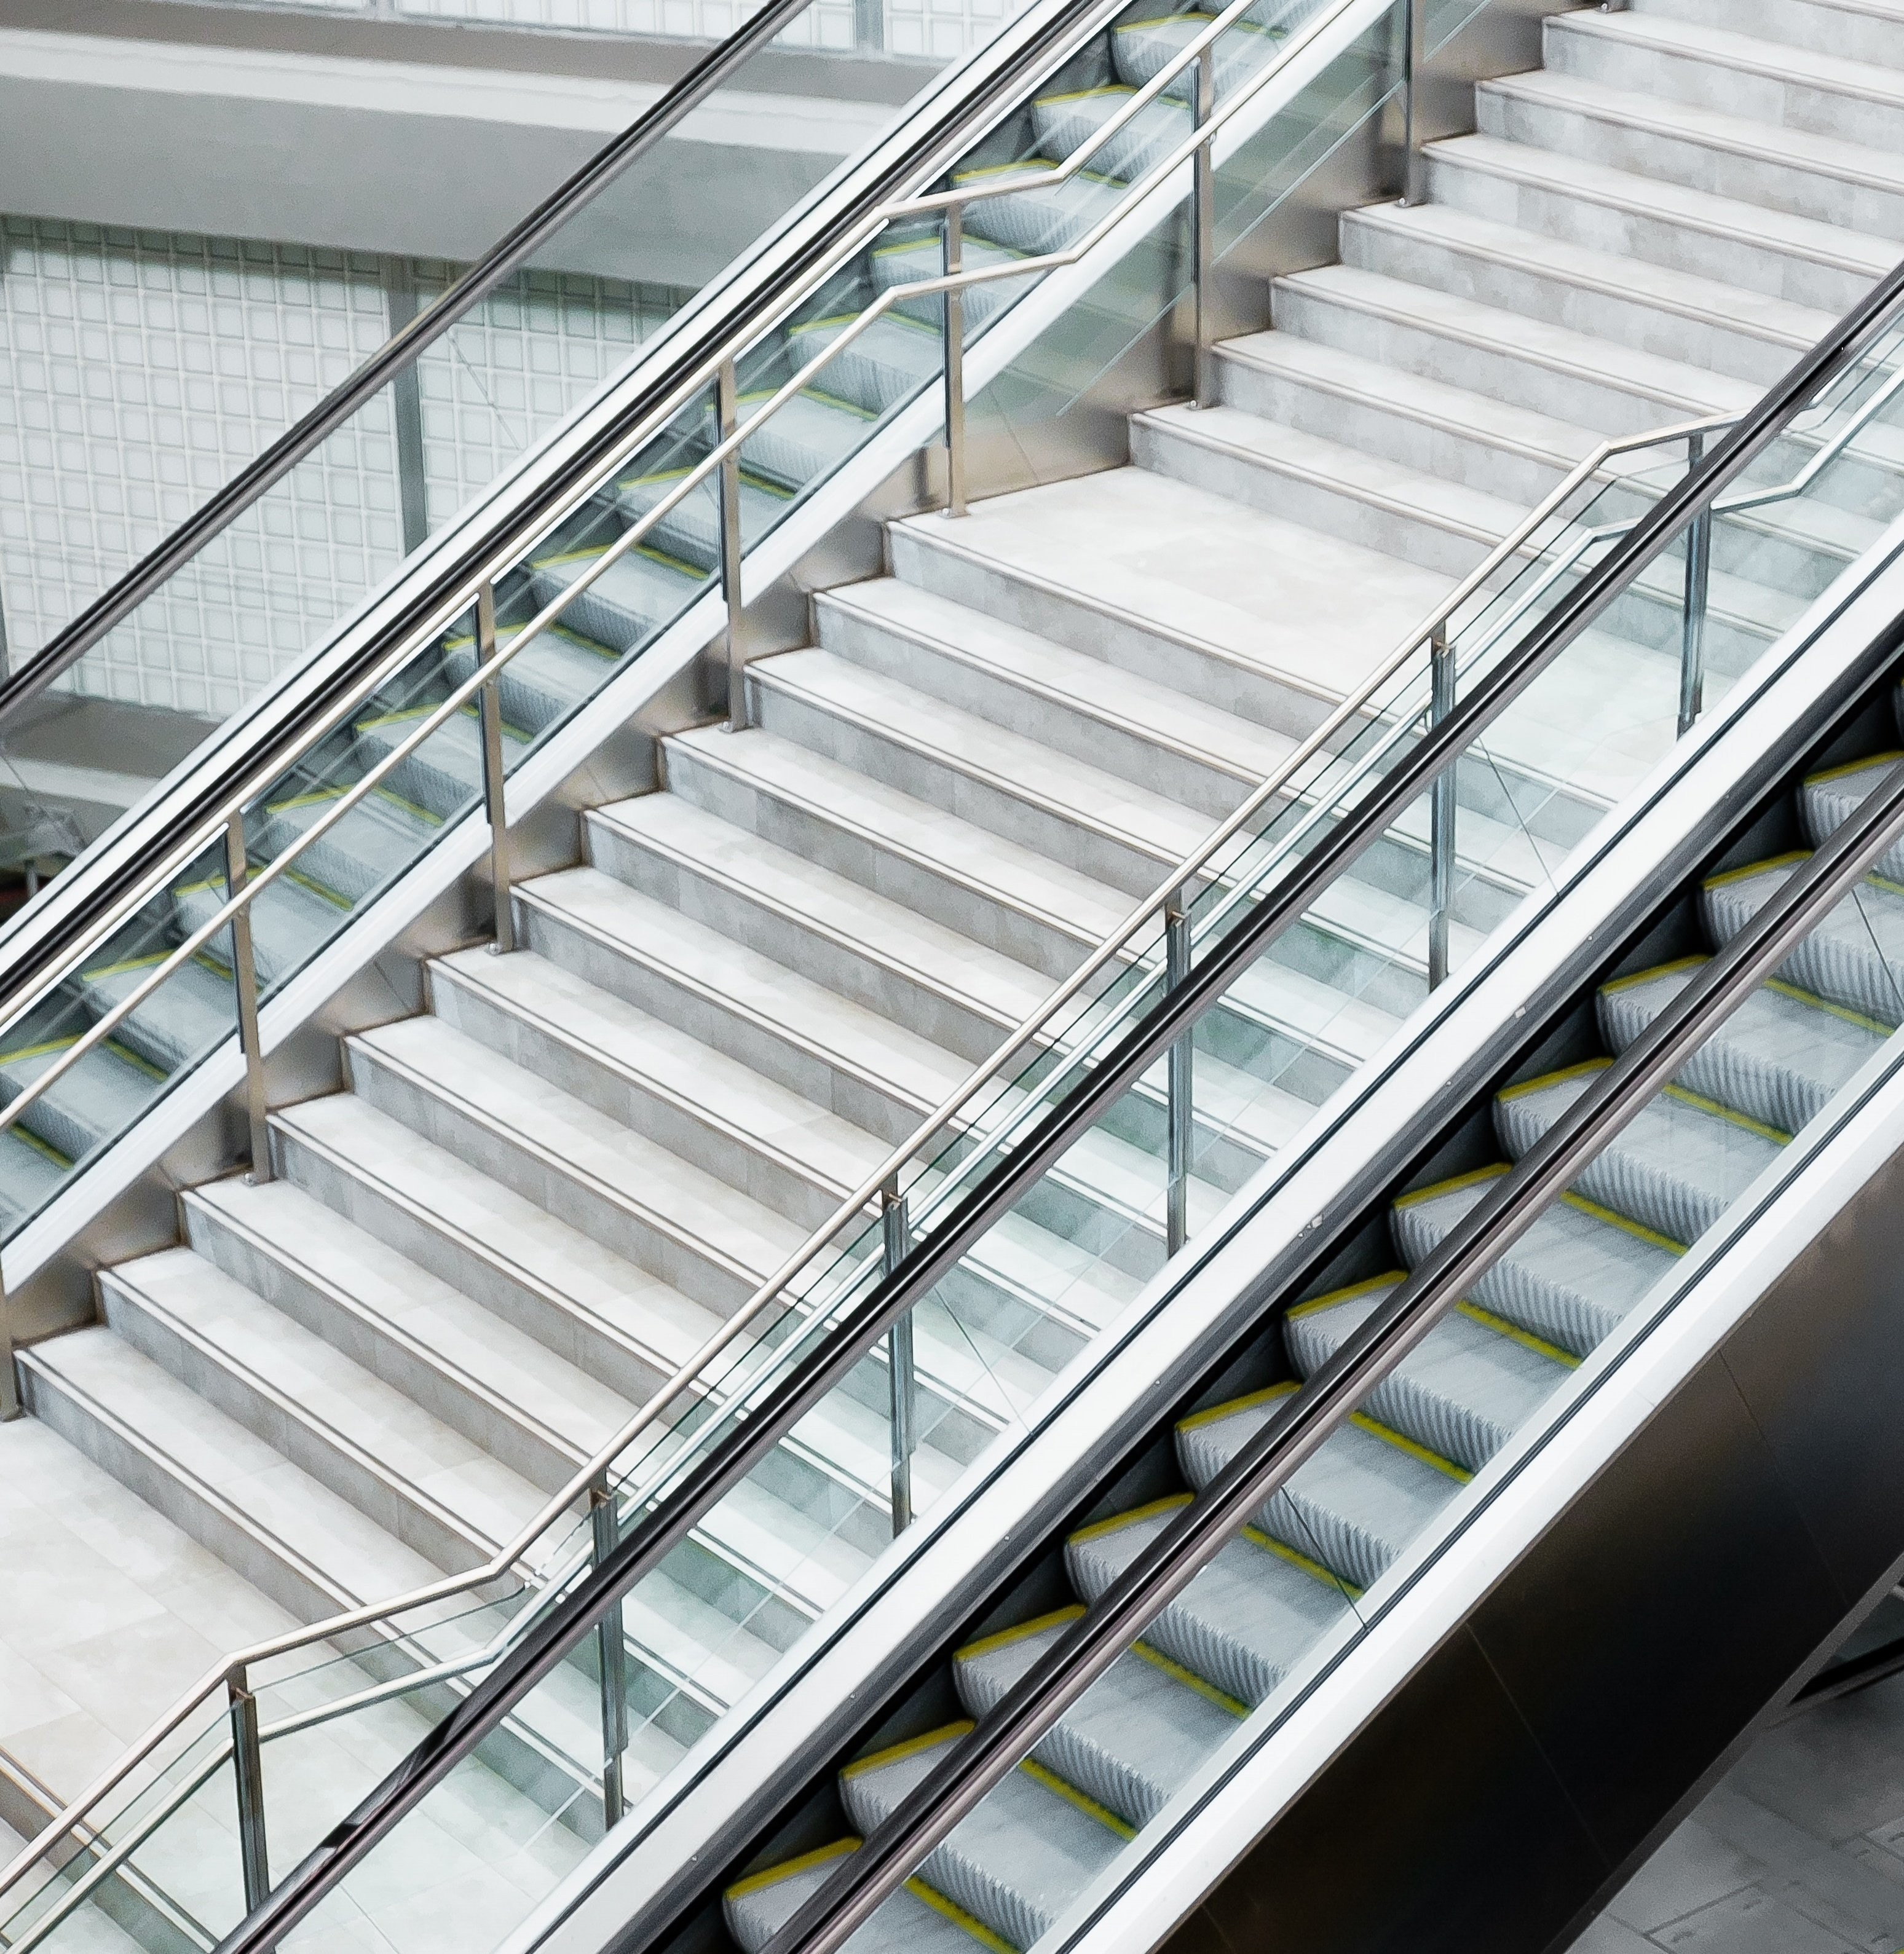 Are You Complying With The ADA's Handrail Requirements?